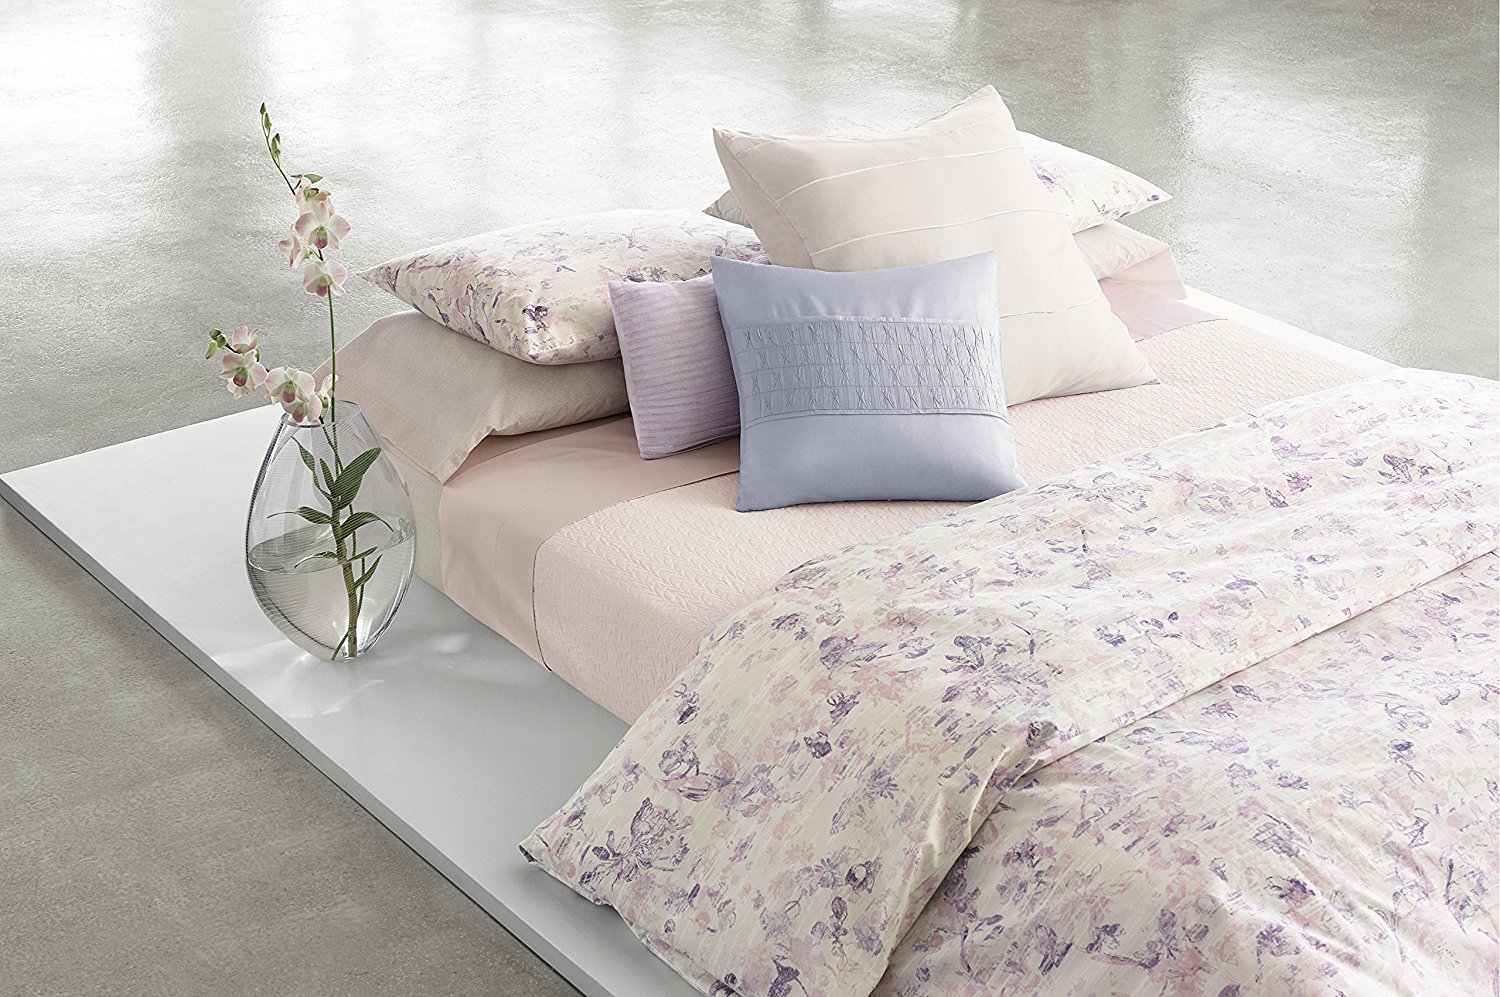 Calvin Klein Blush Lilium Queen Coverlet SOC 1226